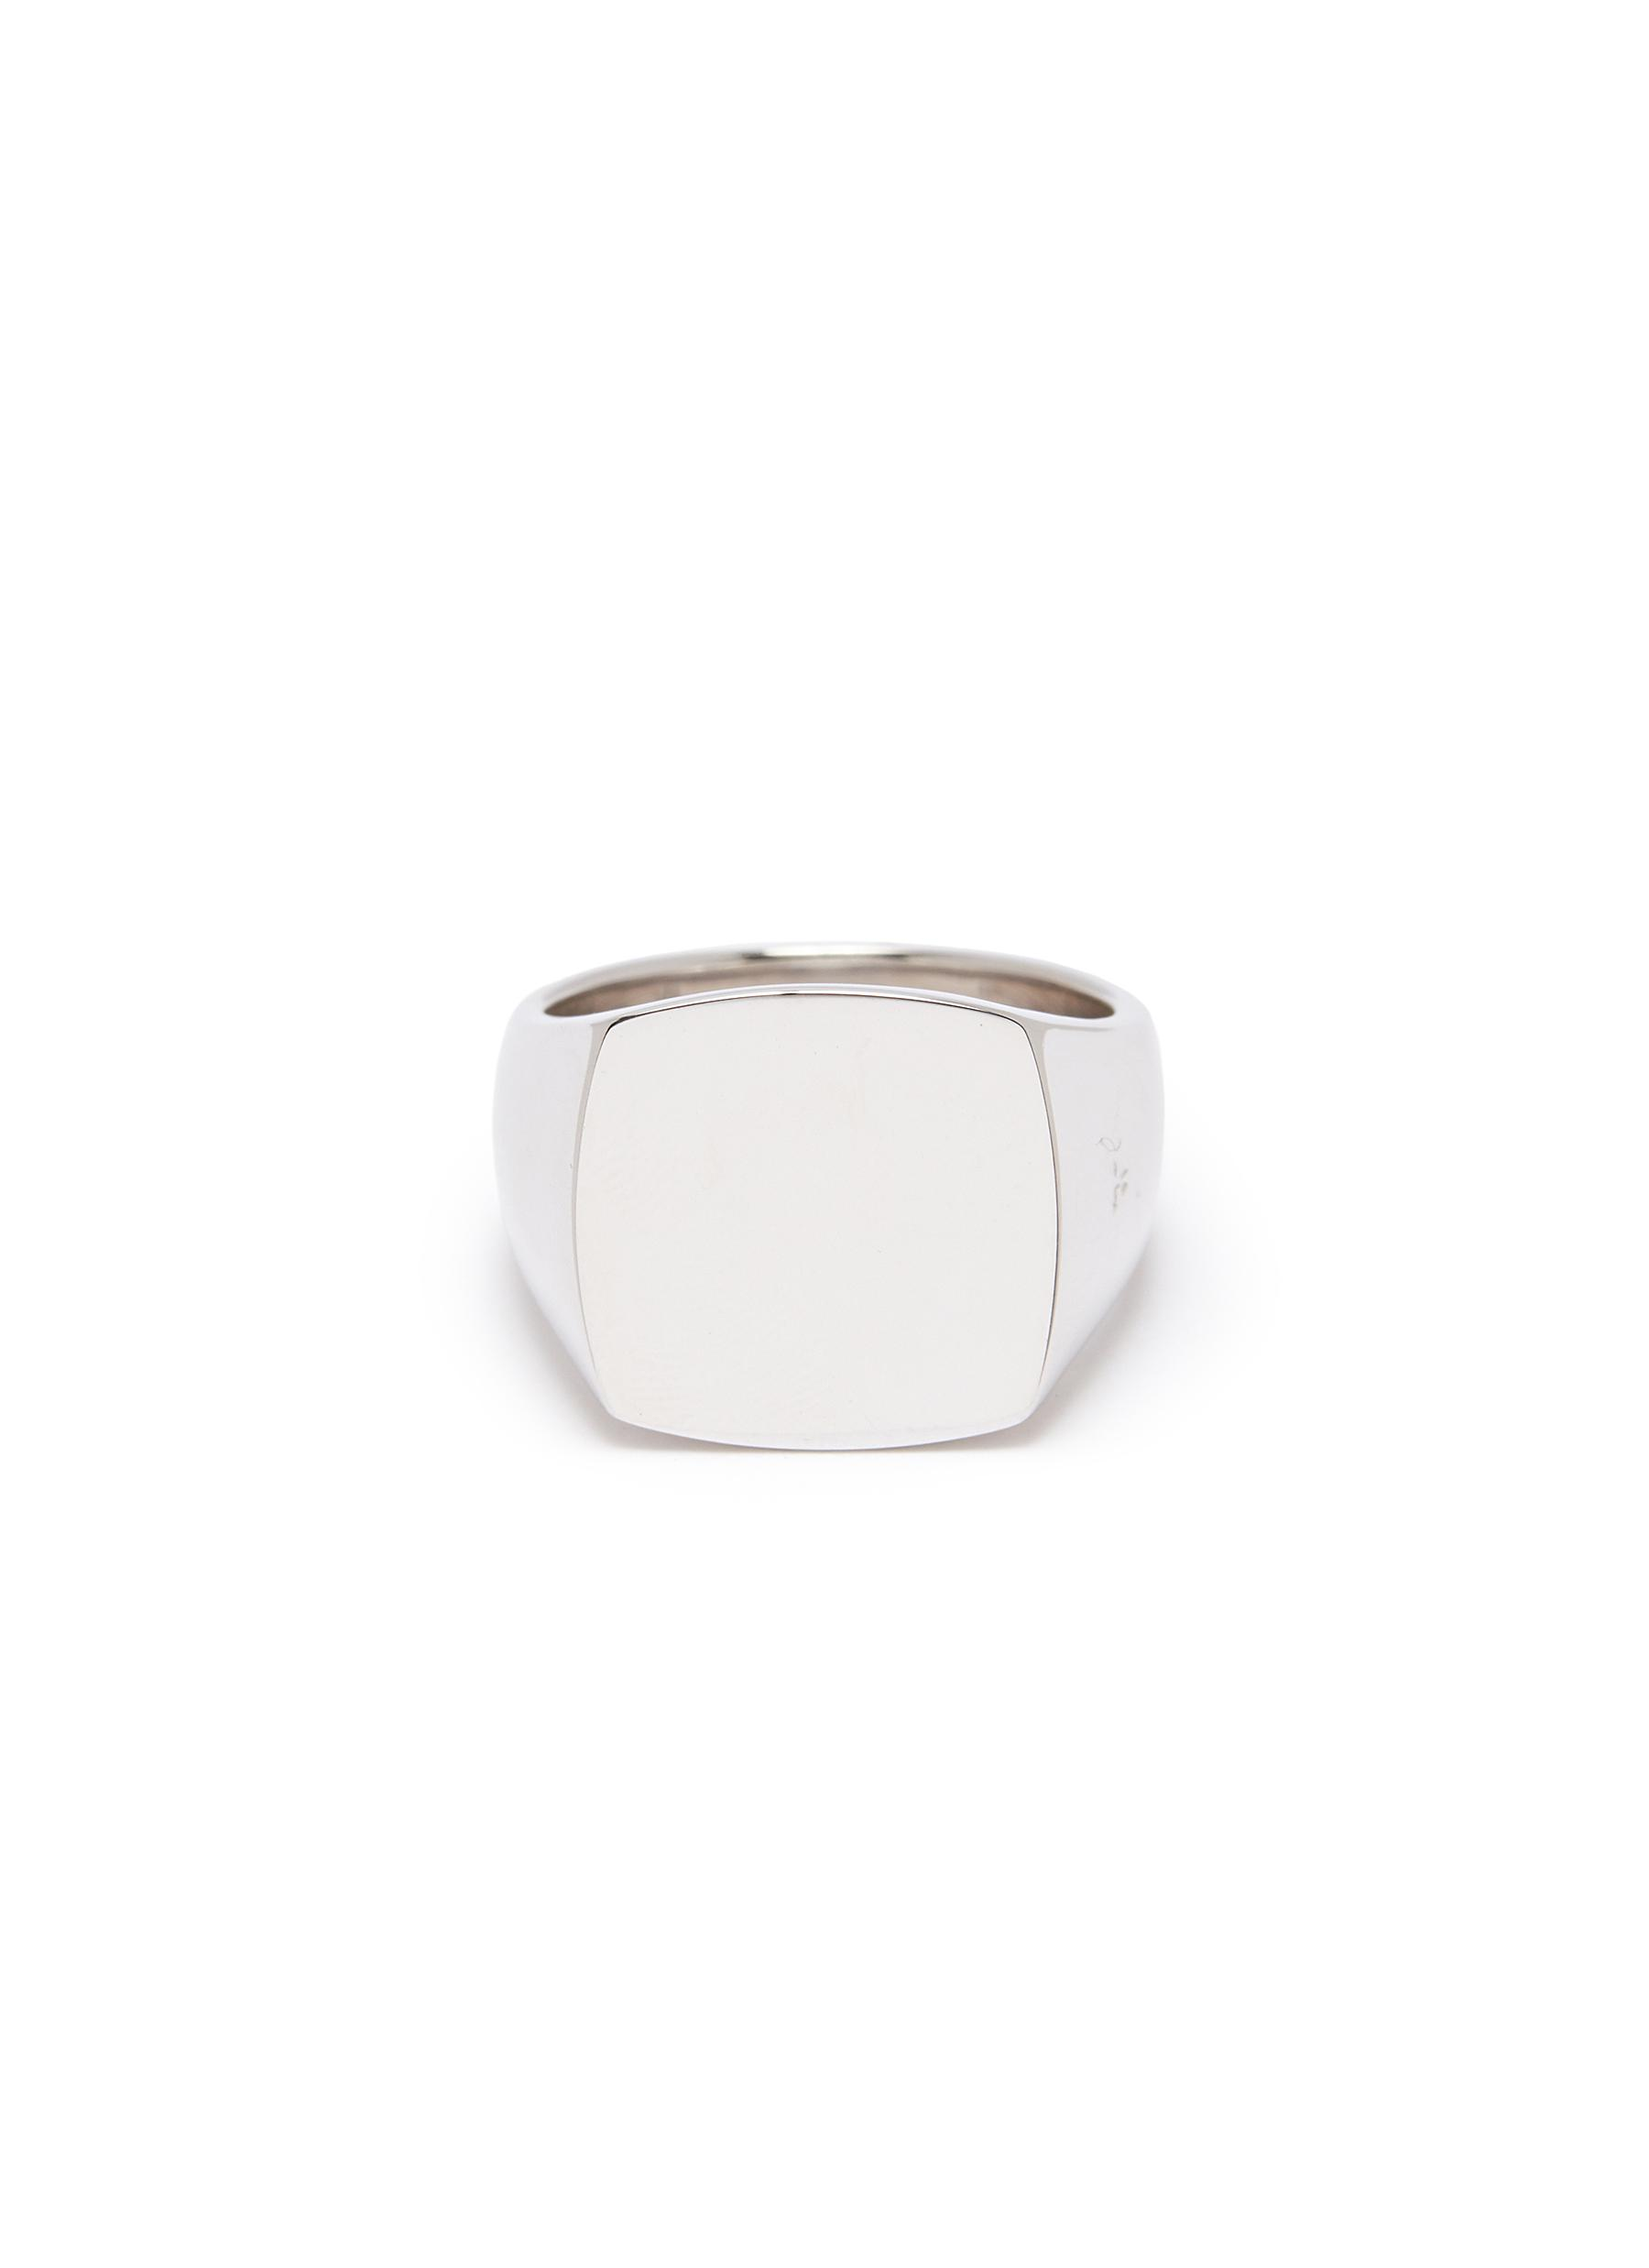 Tom Wood Jewelries 'Cushion Polished' silver signet ring – Size 60